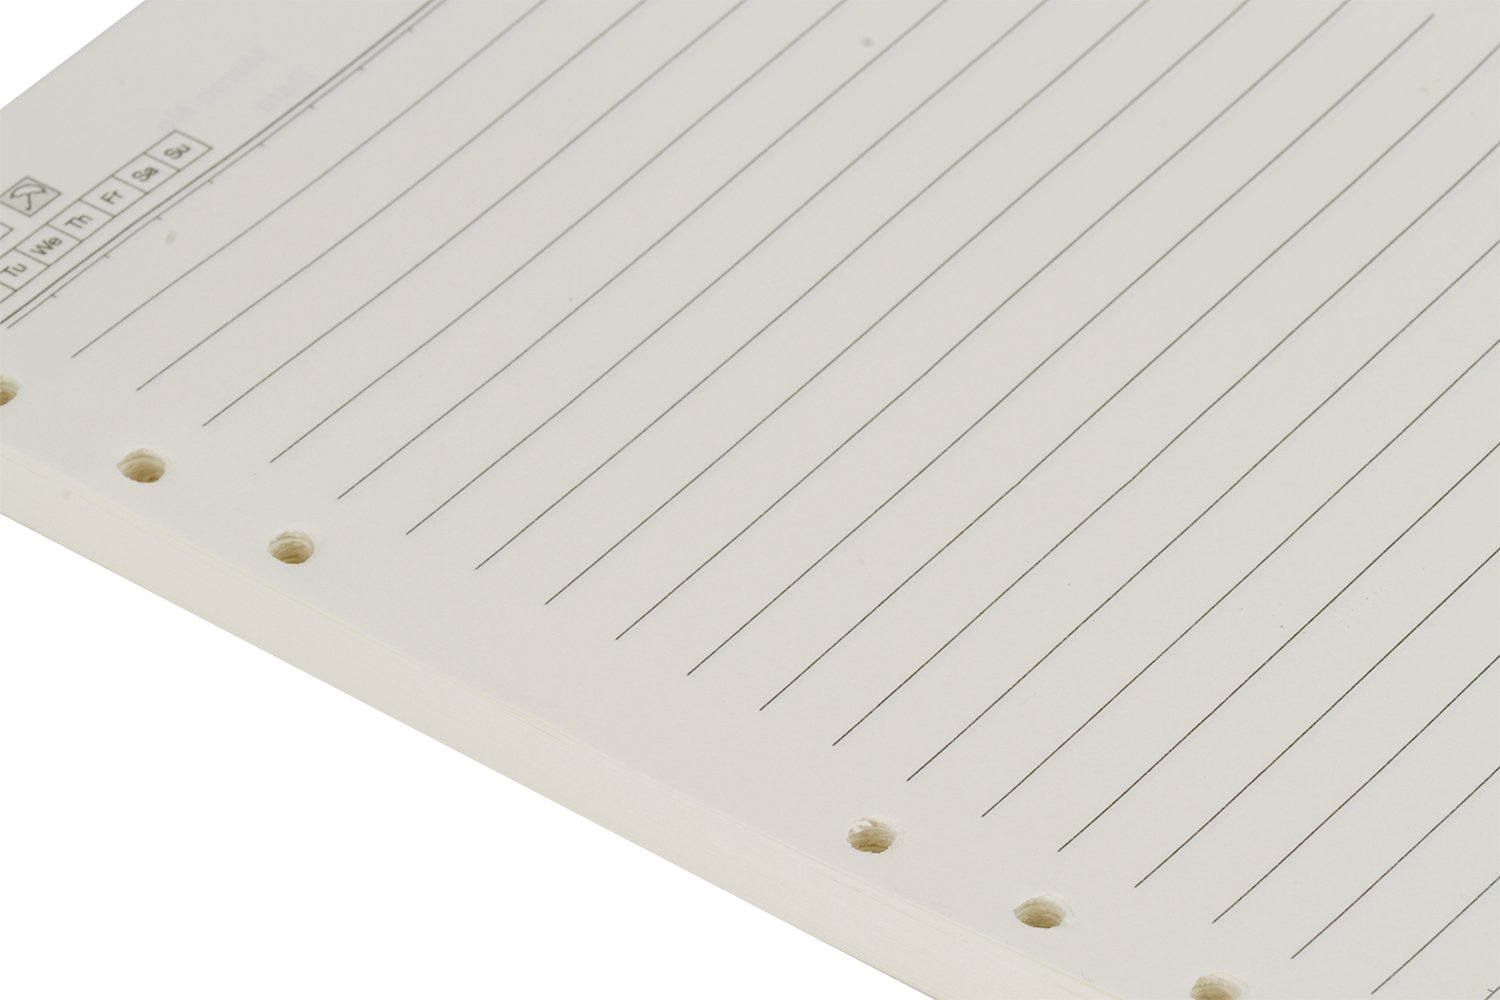 A5 Refill Paper 6 Hole Punched Filler Paper Refills for A5 Loose Leaf Notebook Travel Journal Personal Diary Planner Binder, 100 Sheet/200 Page, Lined Paper, 5.6'' x 8.2'' by Starsouce (Image #3)